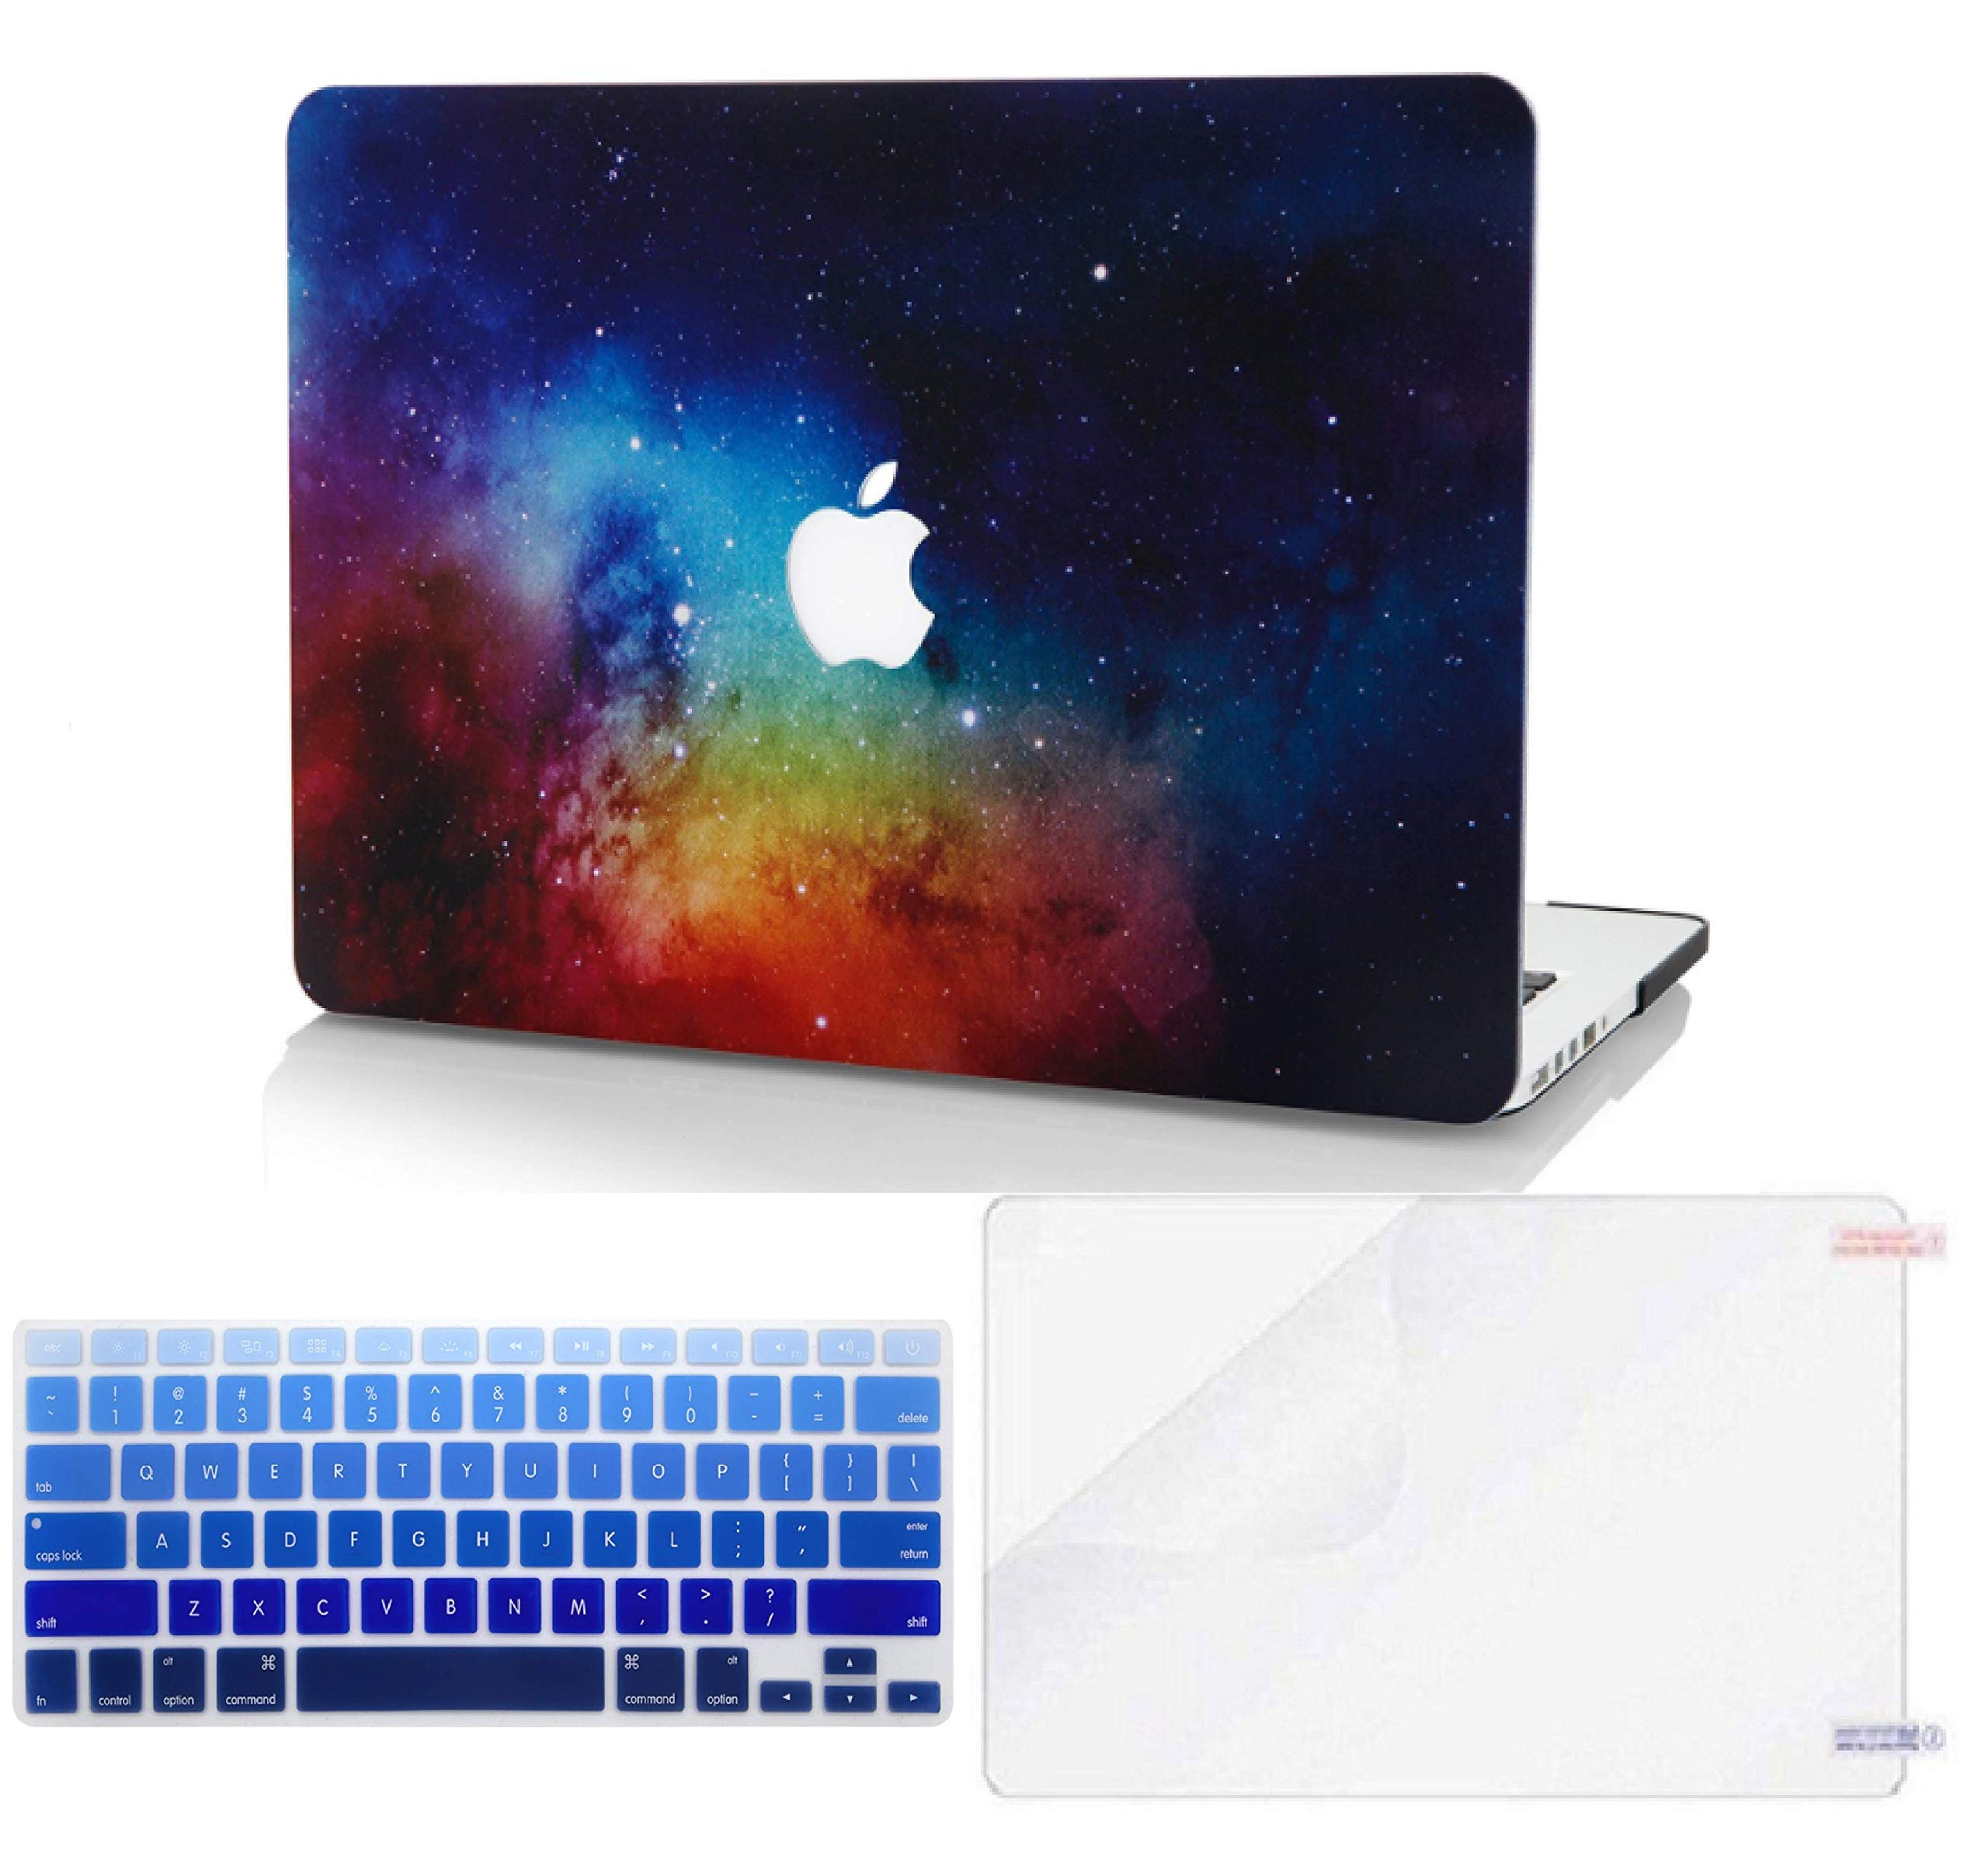 """KECC Laptop Case for MacBook Air 13"""" w/Keyboard Cover Plastic Hard Shell + Screen Protector A1466/A1369 3 in 1 Bundle (Night Dream)"""